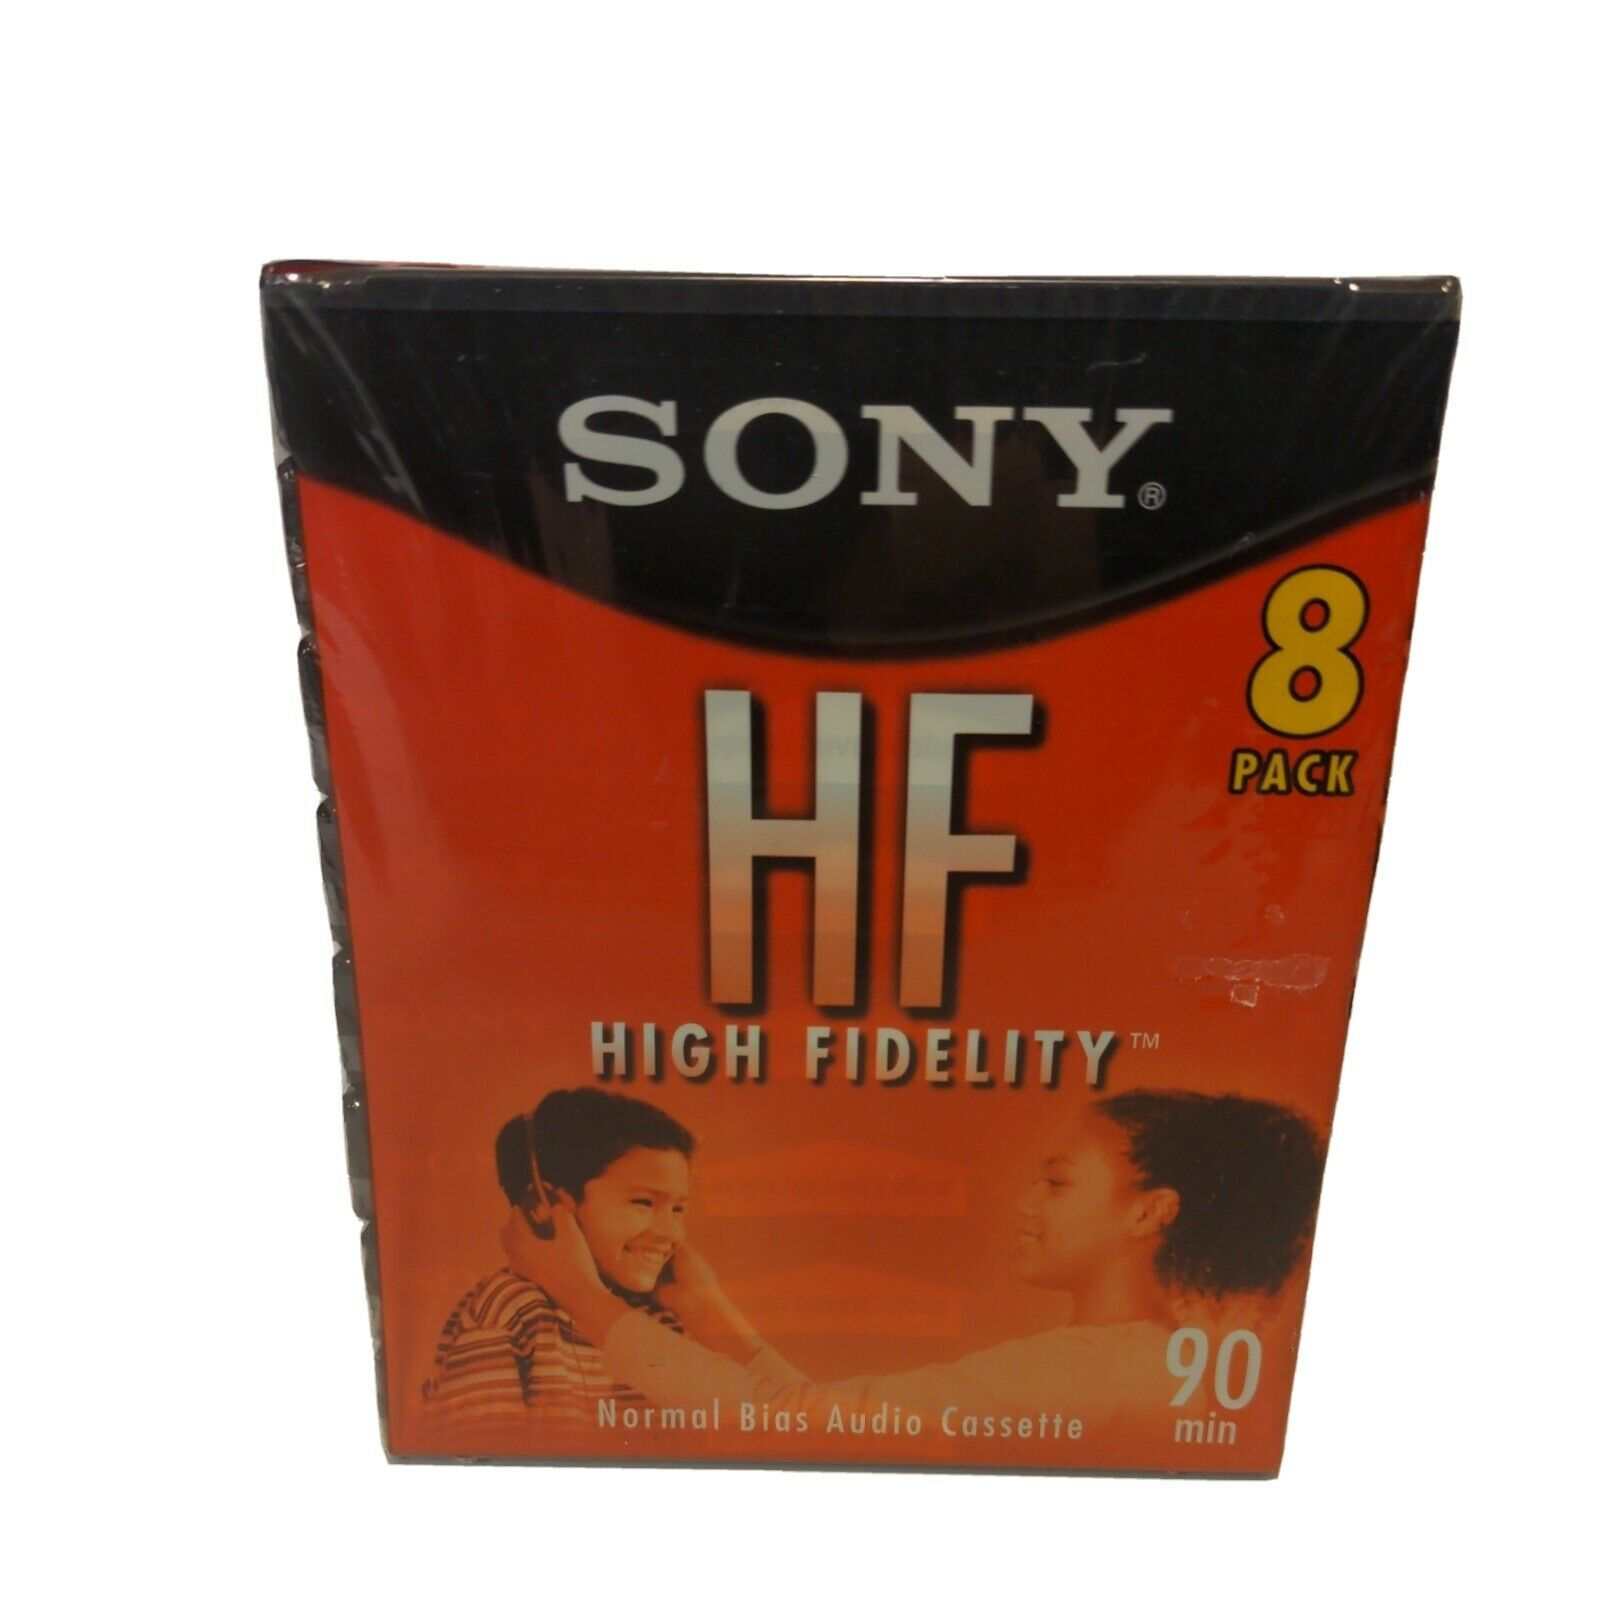 8 Pack New Sony HF High Fidelity 90 Minute Blank Audio Cassette Tapes - $17.99